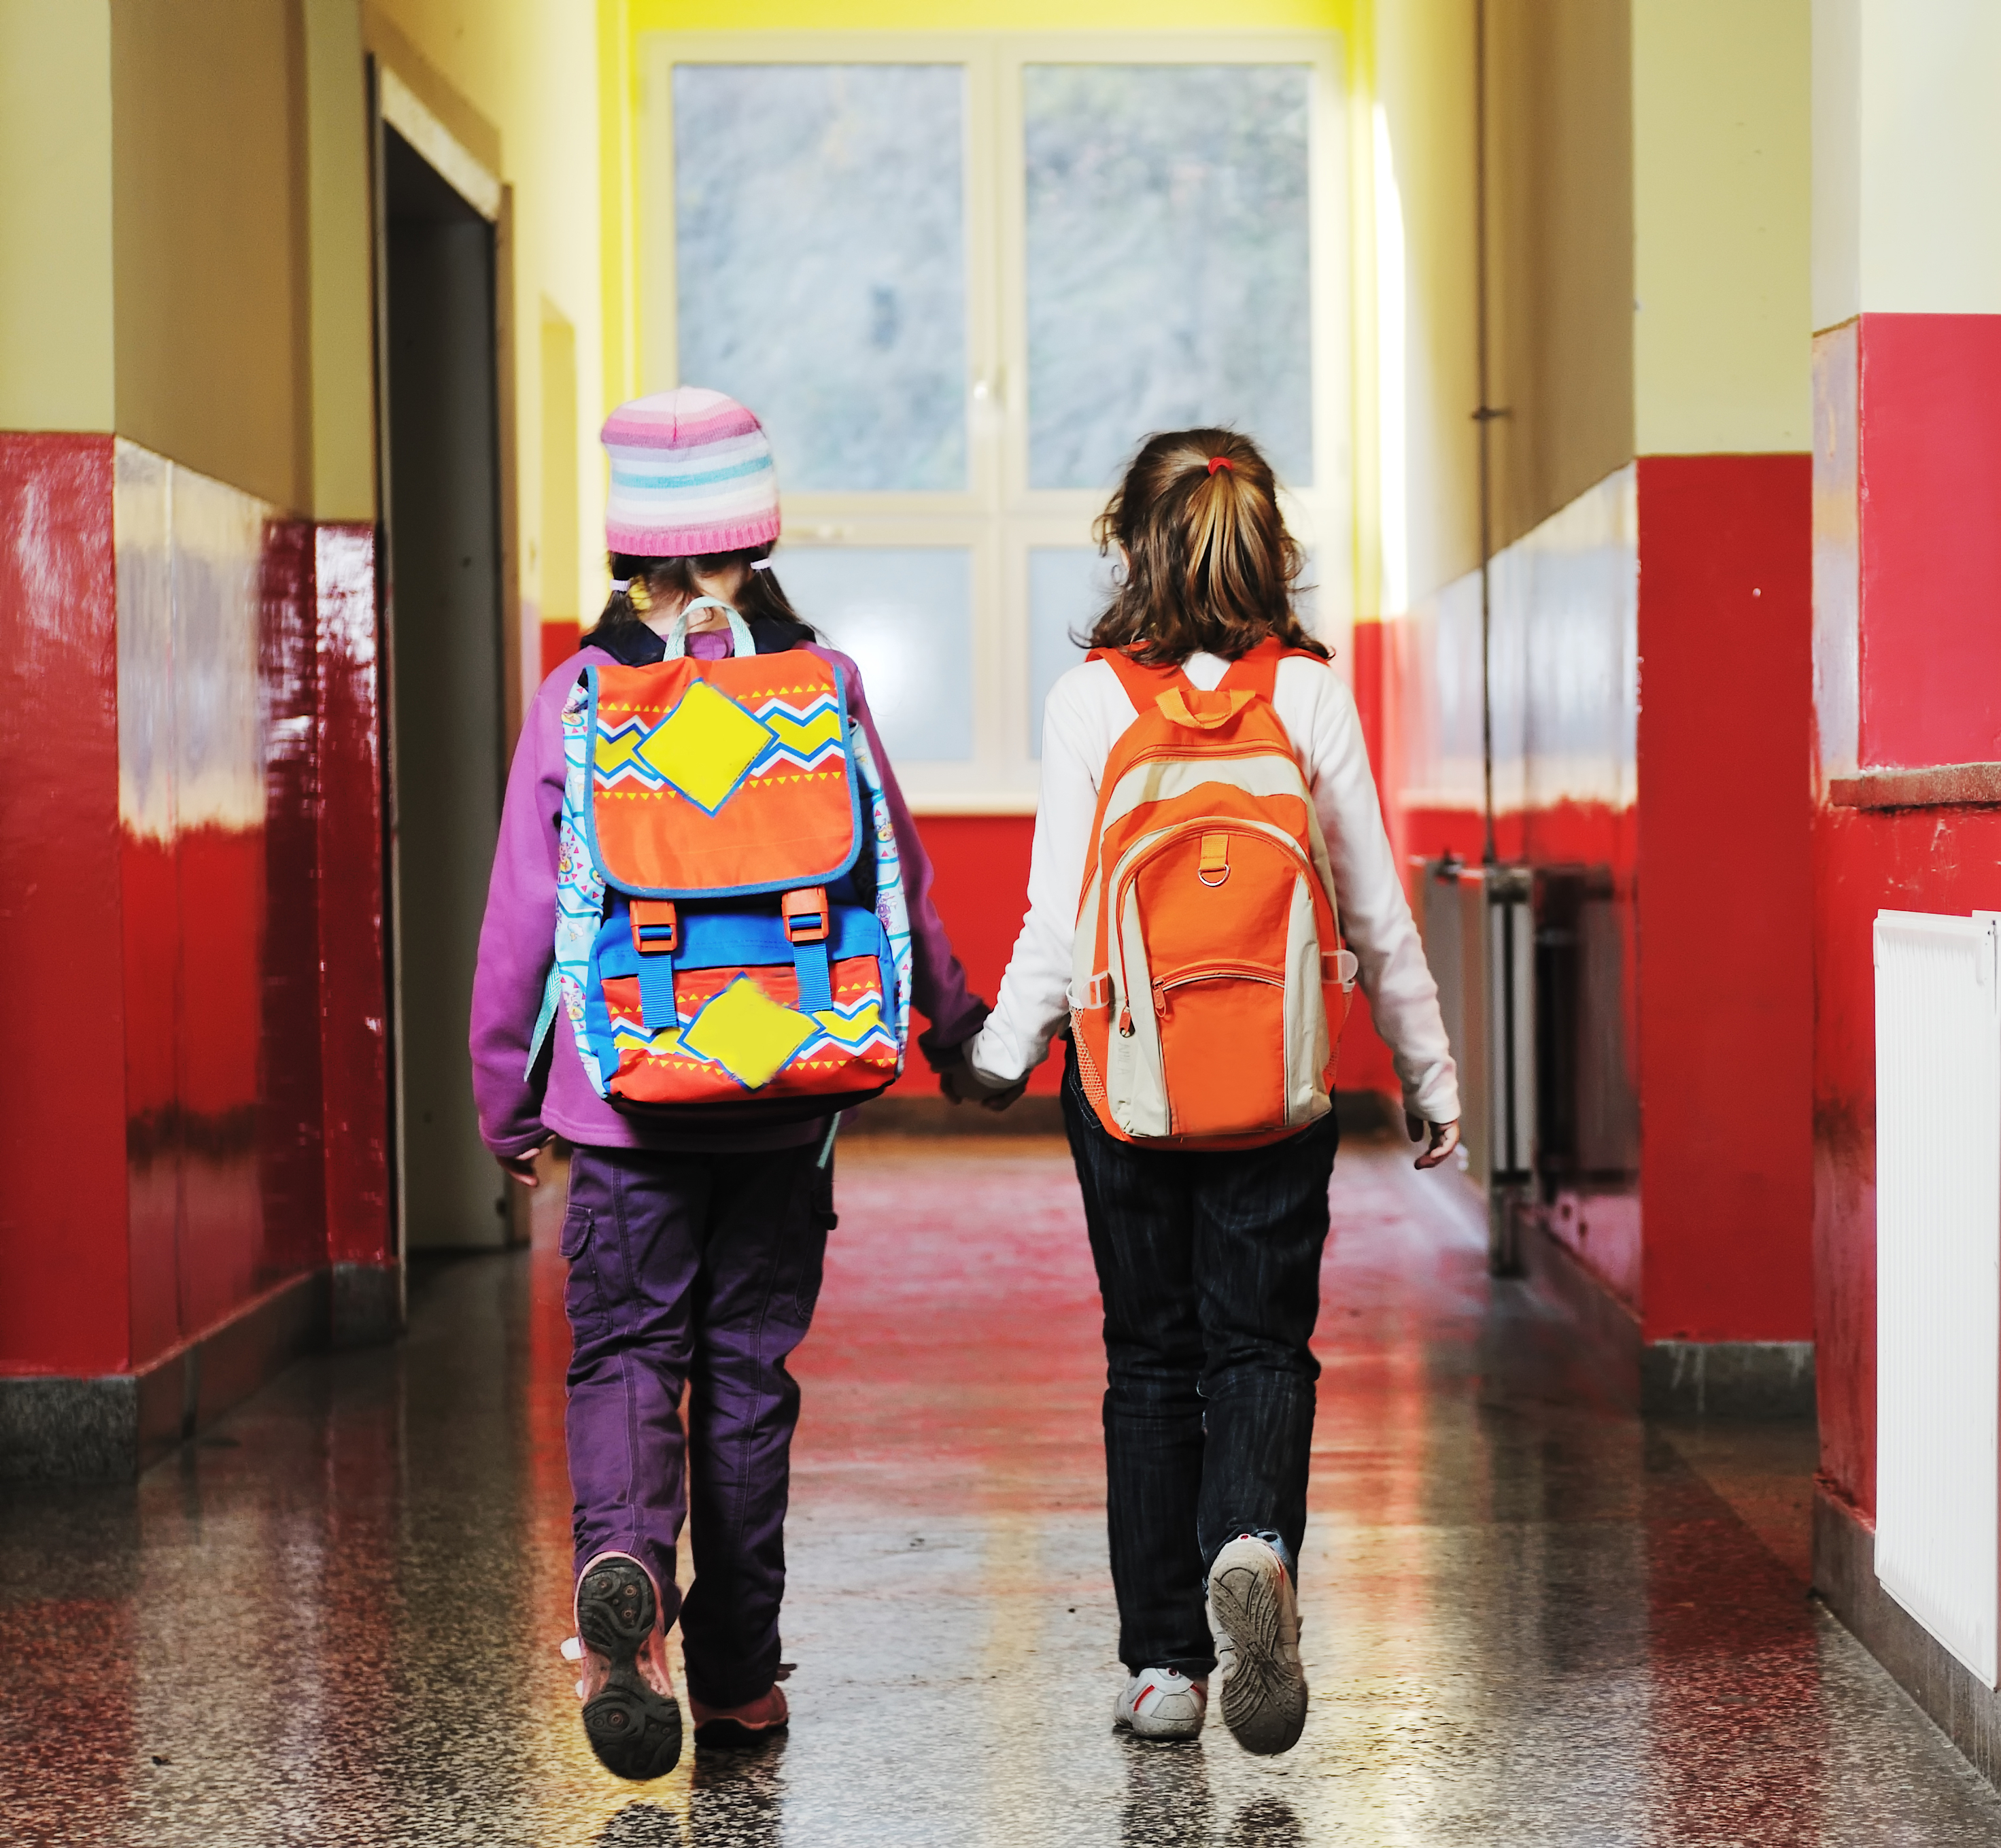 Common Reasons to Buy a New Home: Children Entering School